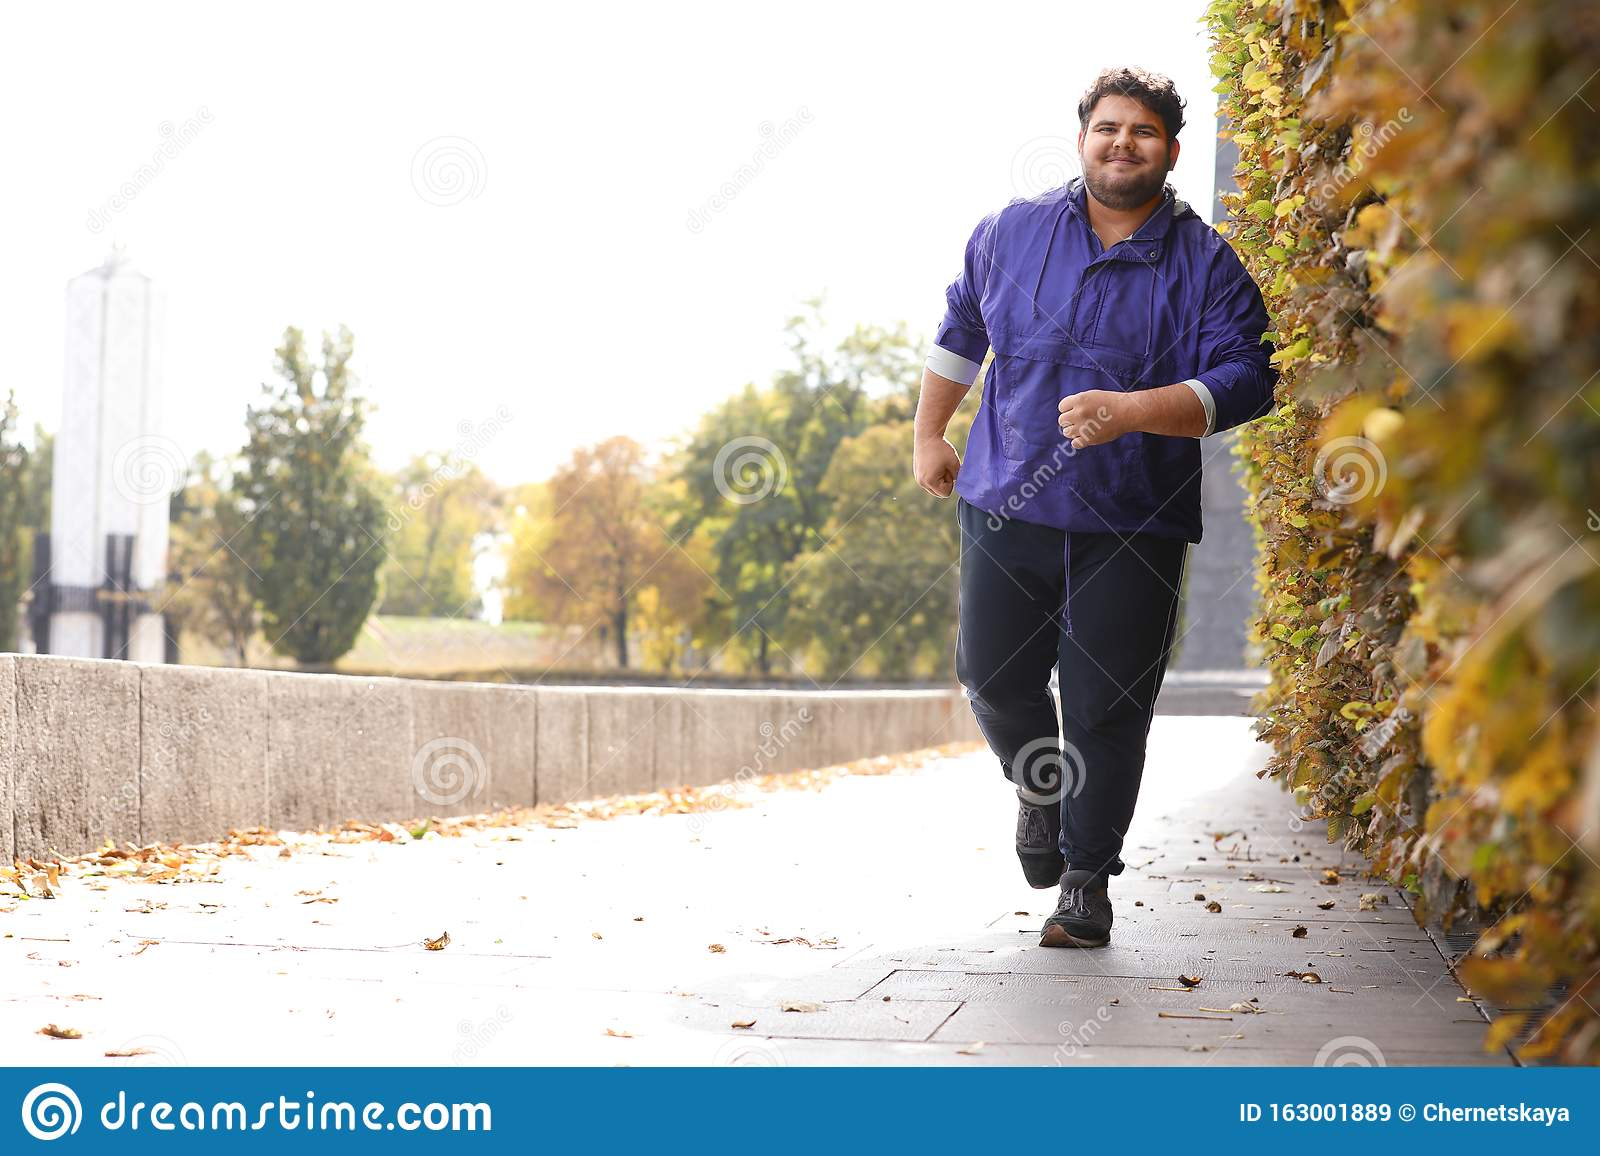 Young Overweight Man Running Fitness Lifestyle Stock Image Image Of Care Healthy 163001889